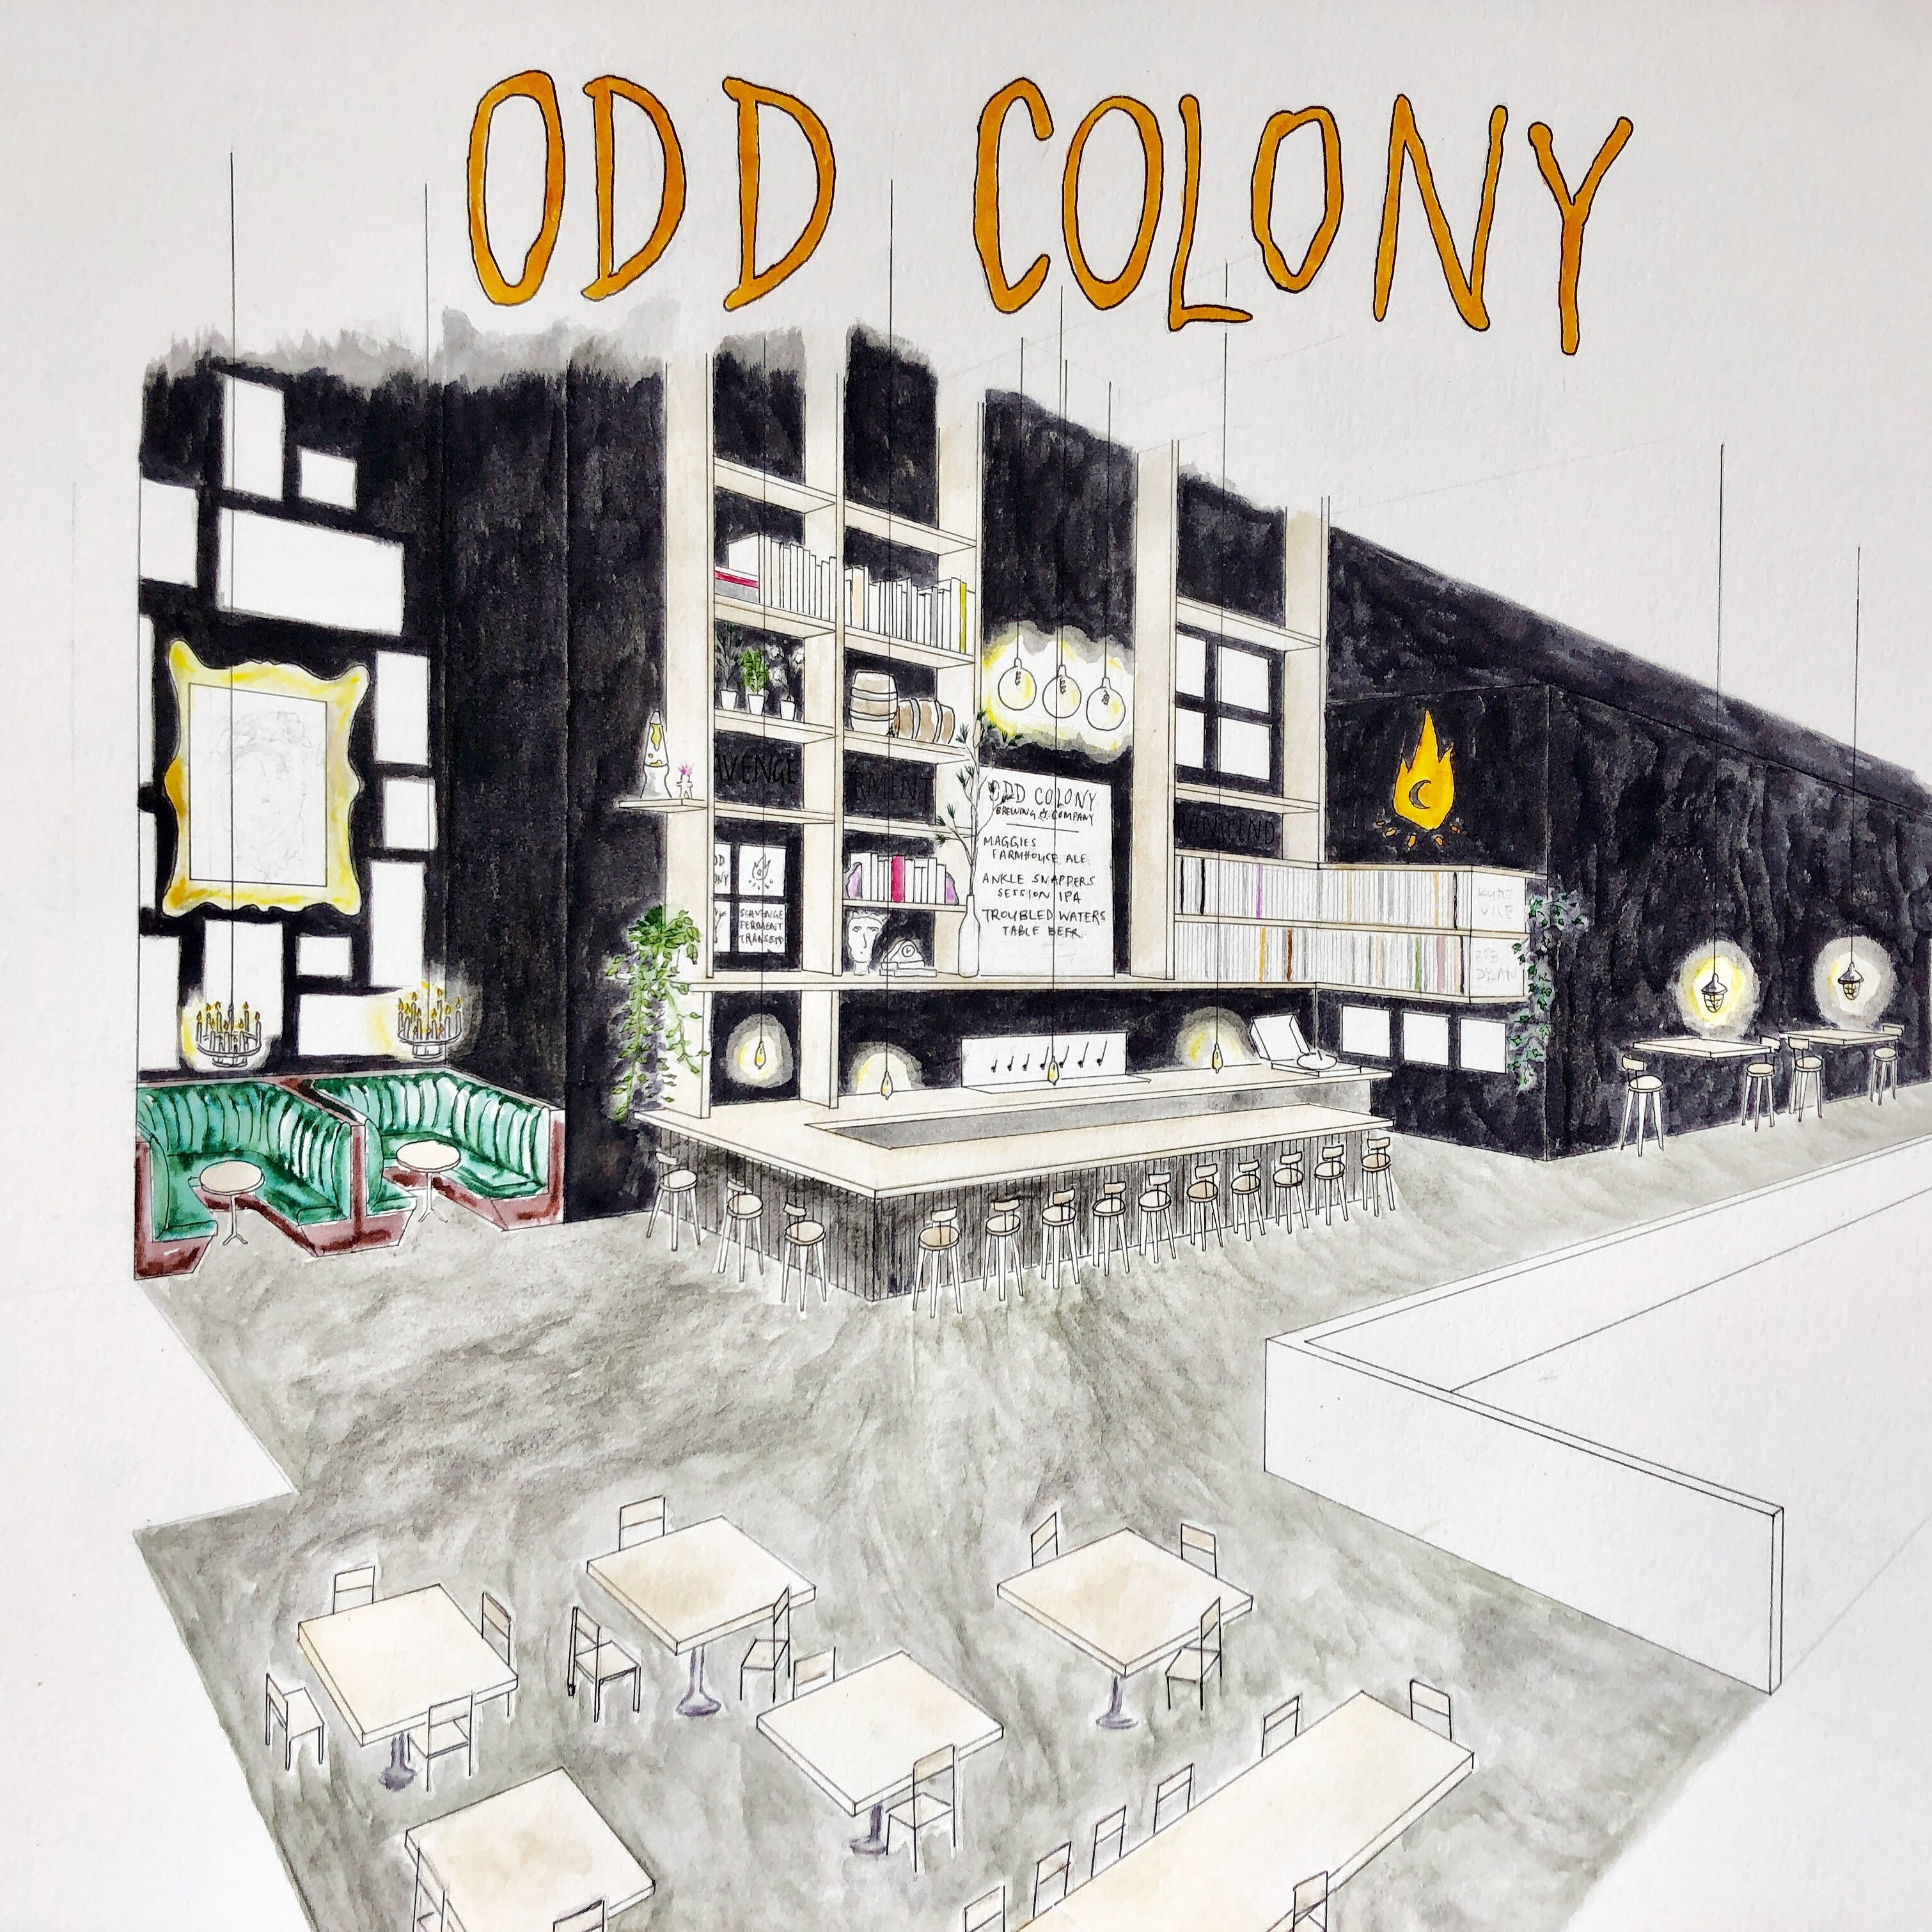 Odd Colony Brewing Co. to bring wilderness-inspired beers to Pensacola this summer